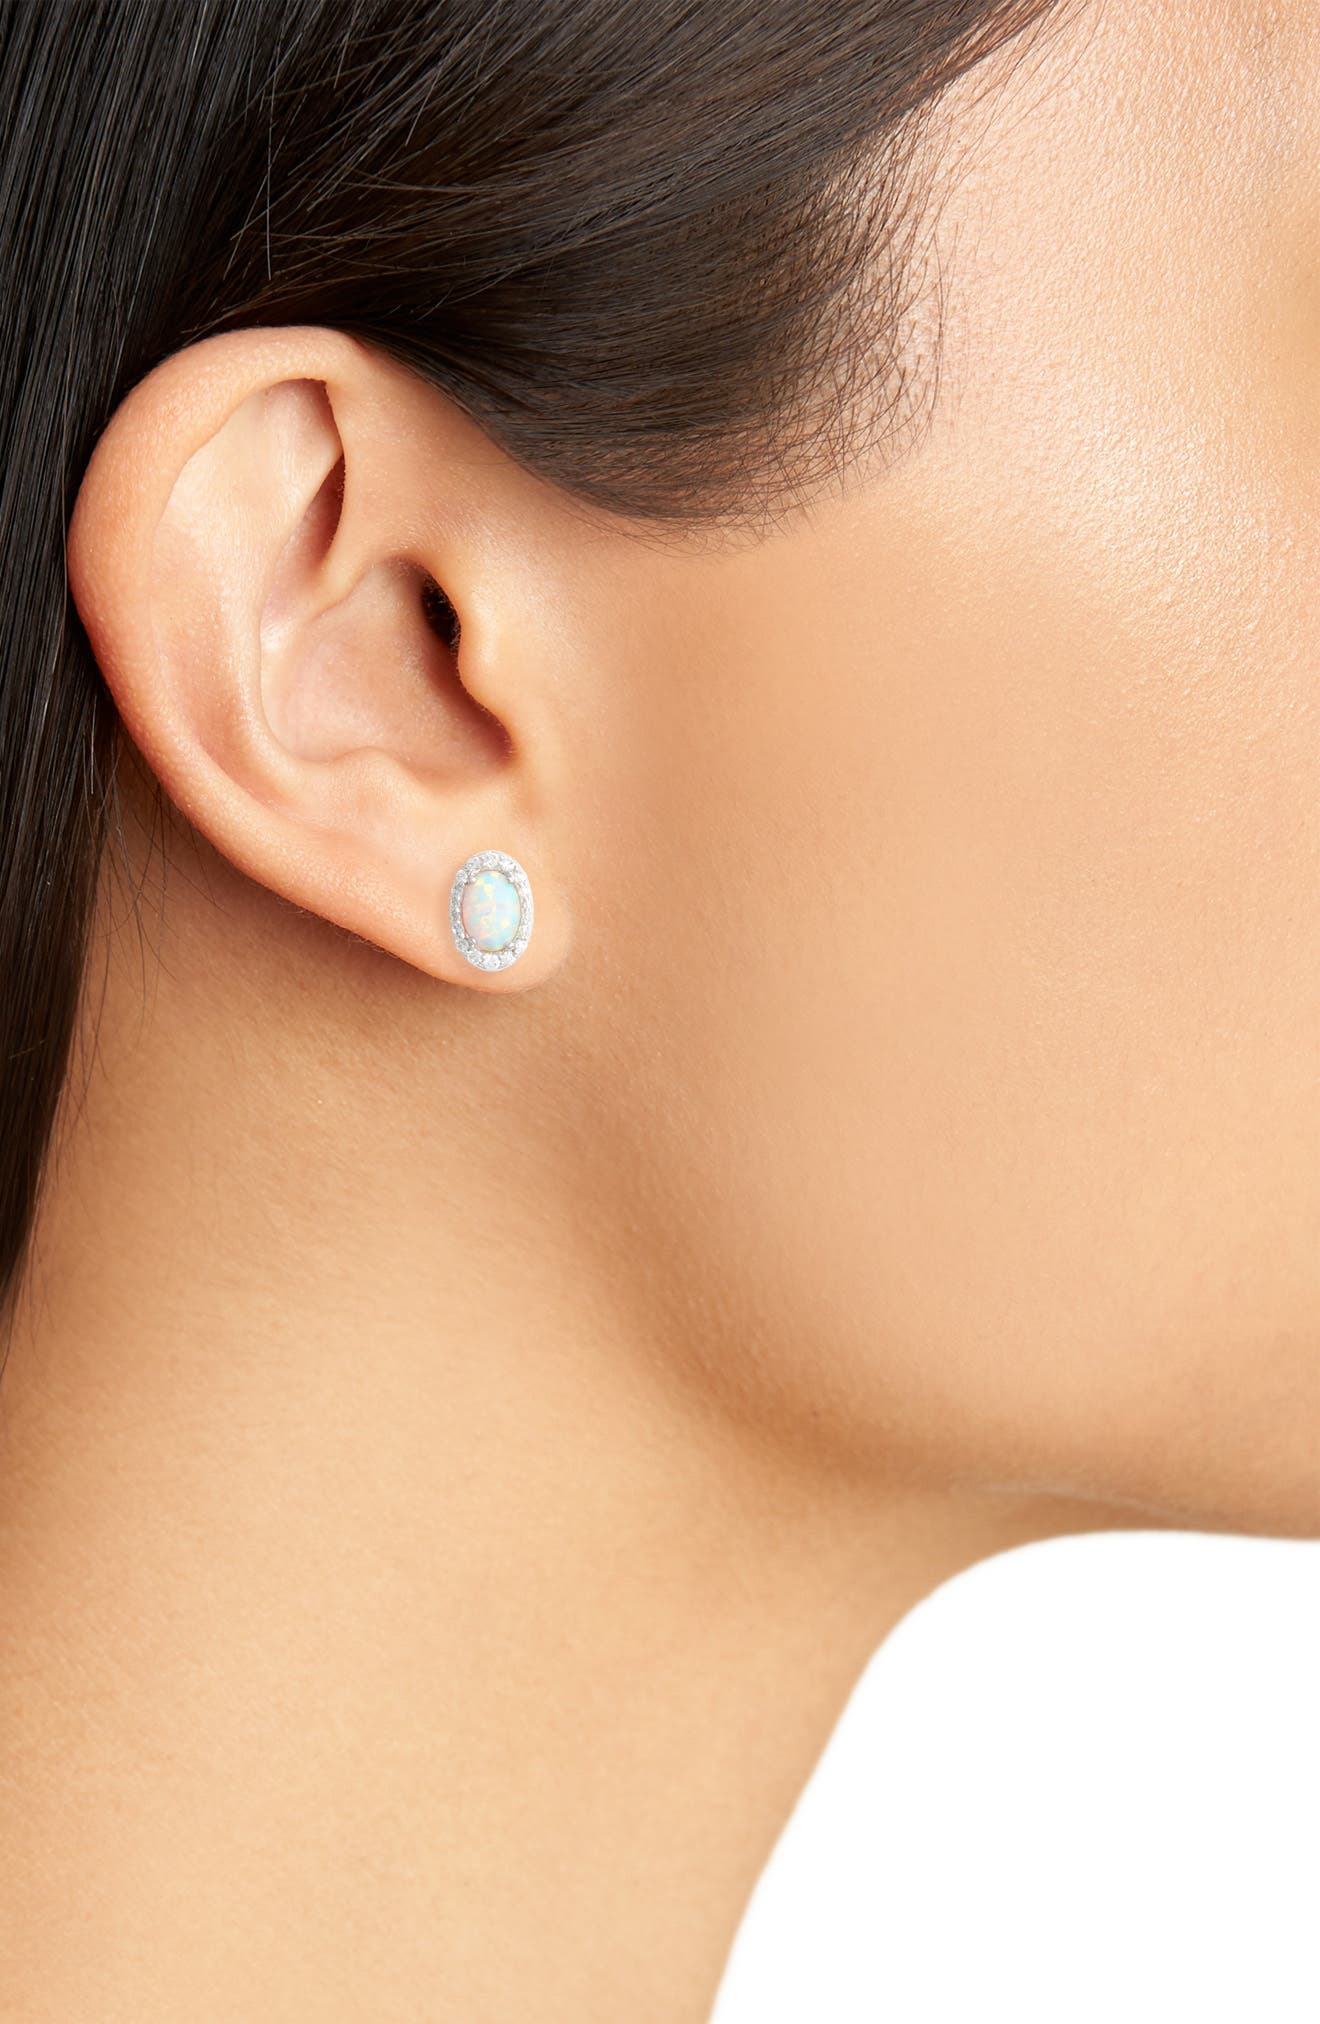 Simulated Opal Halo Stud Earrings,                             Alternate thumbnail 2, color,                             Silver/ Opal/ Clear